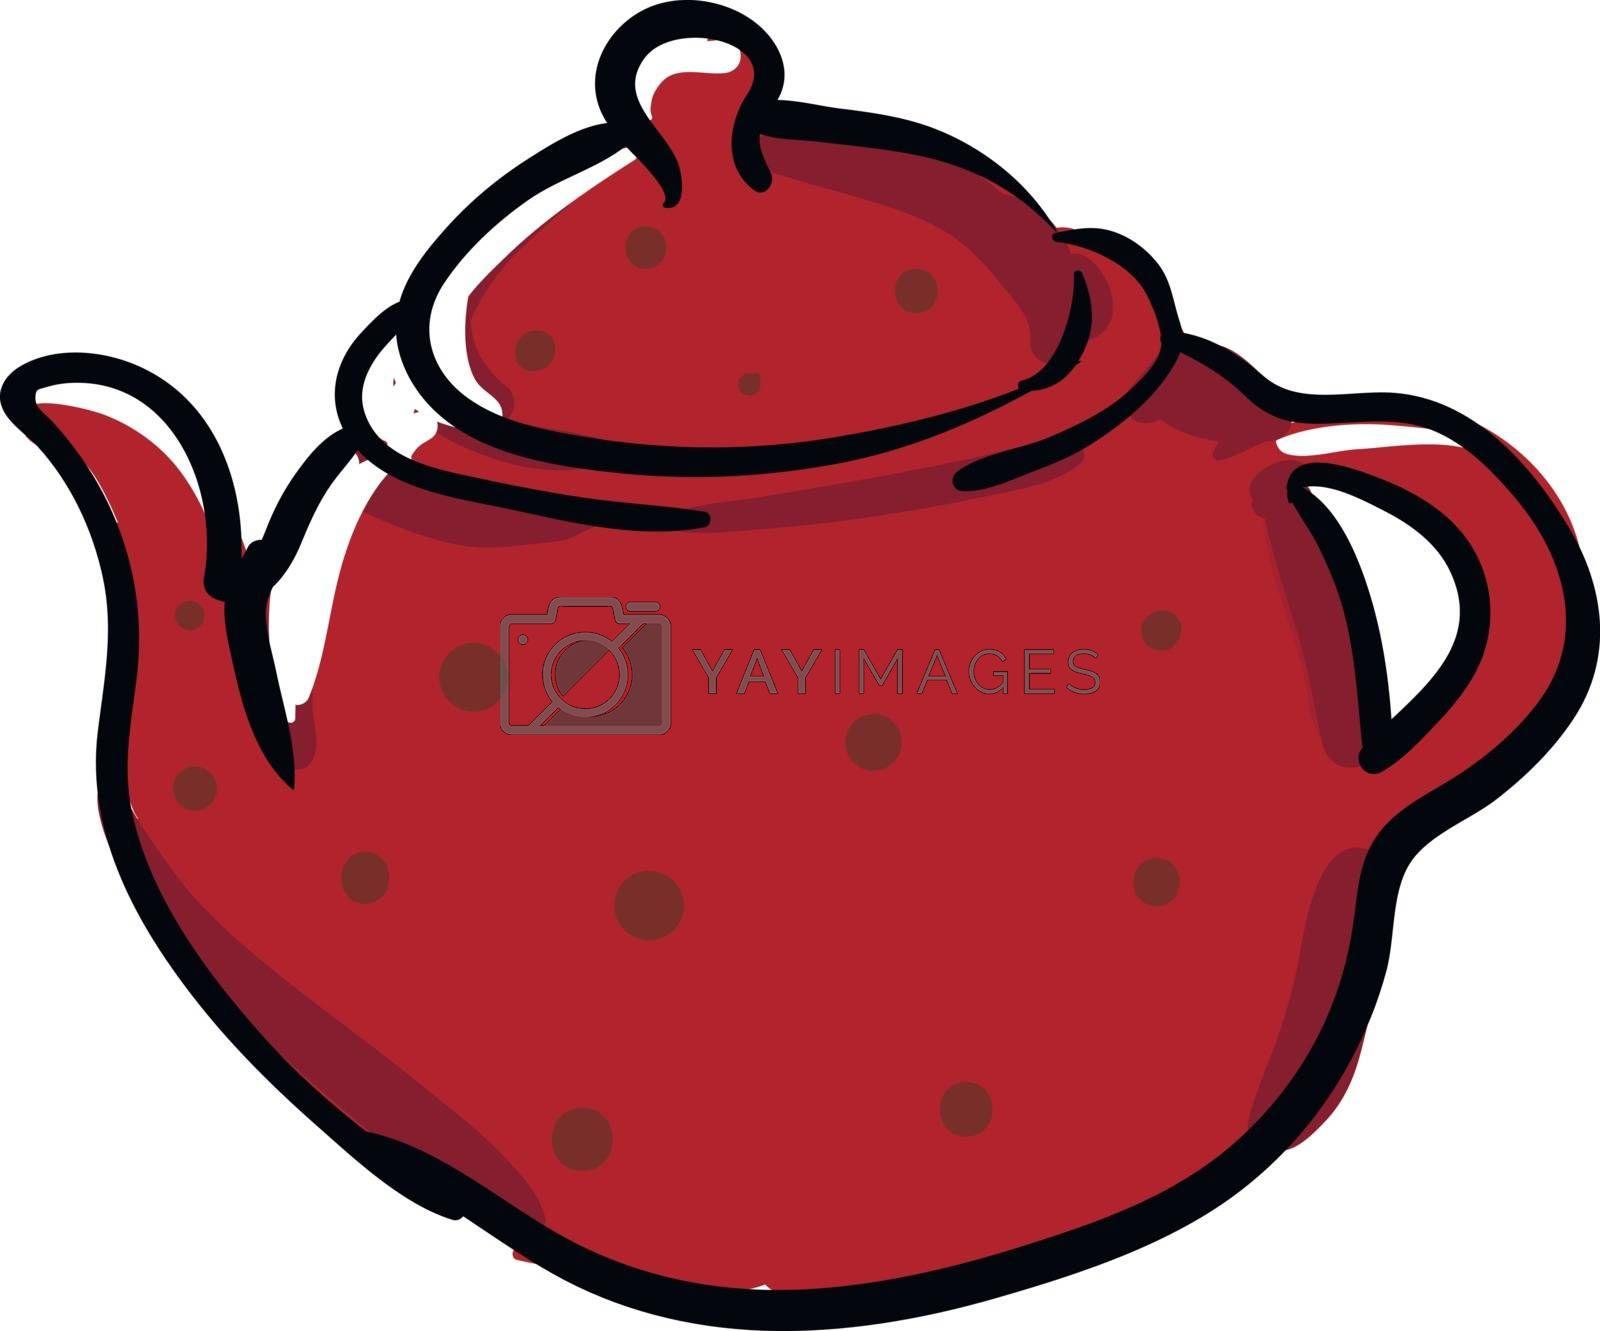 Royalty free image of Clipart of a red-colored teapot/Evening snacks time vector or co by Morphart